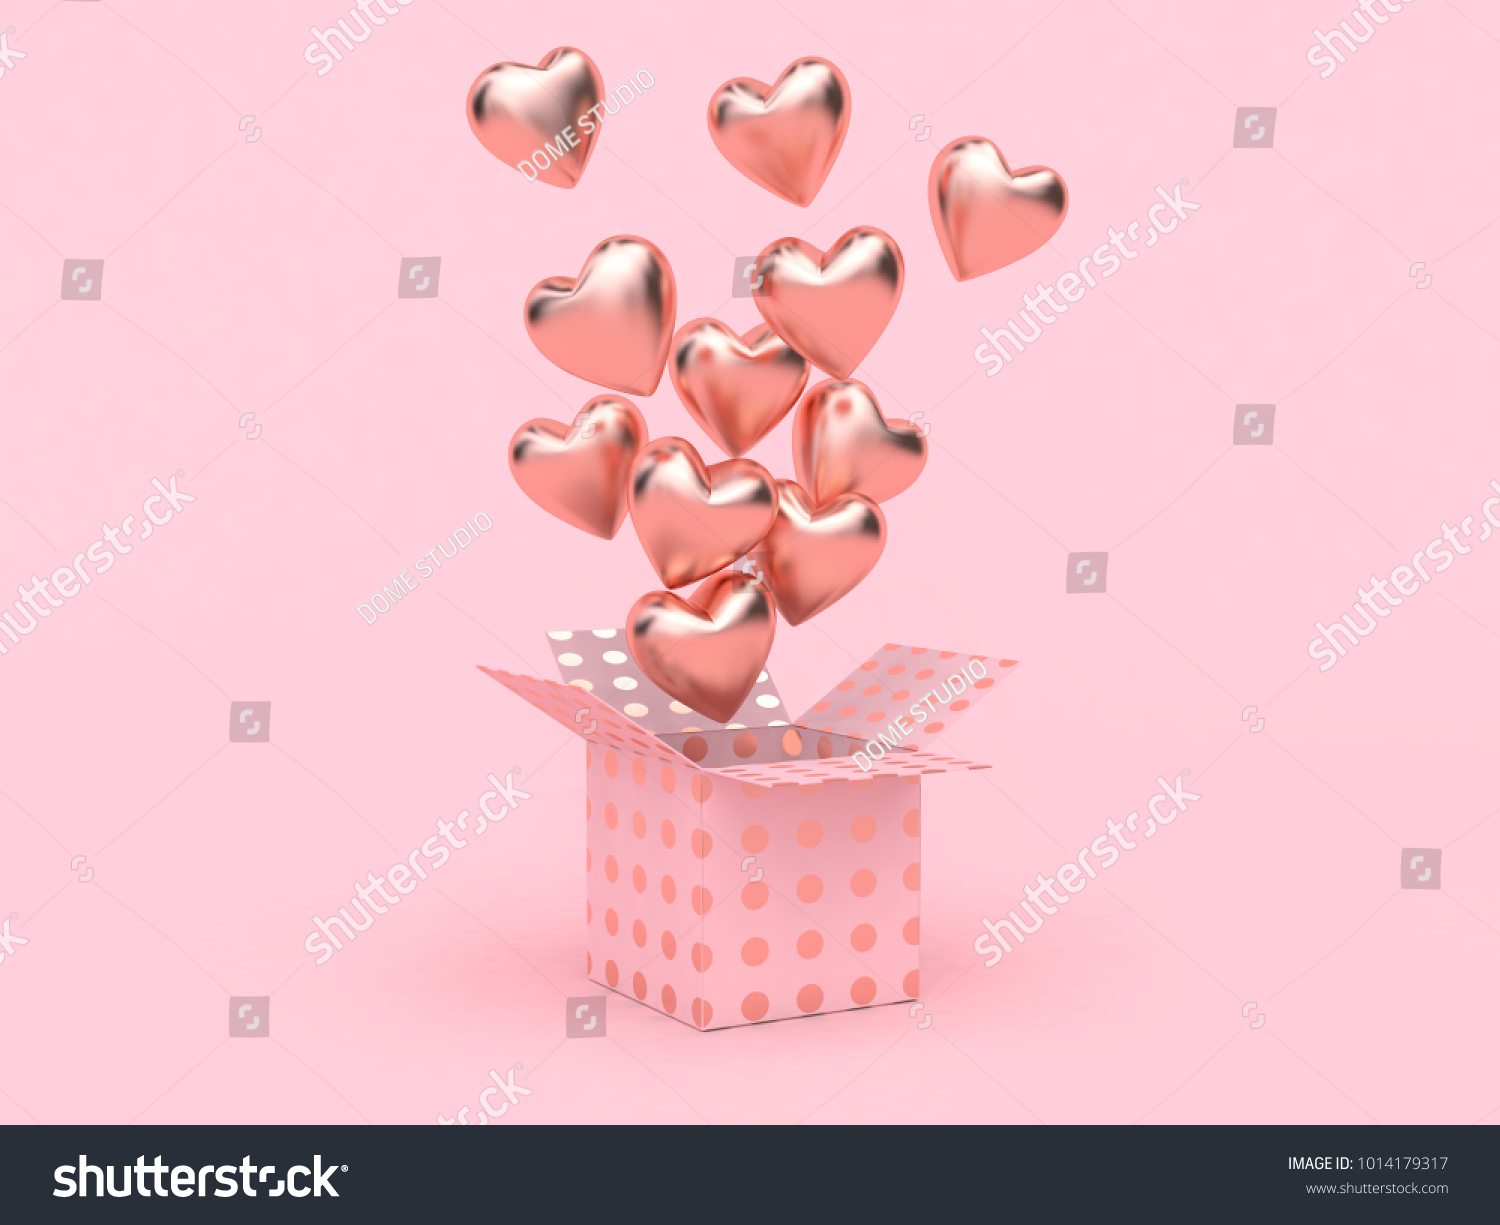 Gift box open balloon heart floating 1014179317 gift box open balloon heart floating 1014179317 shutterstock negle Image collections